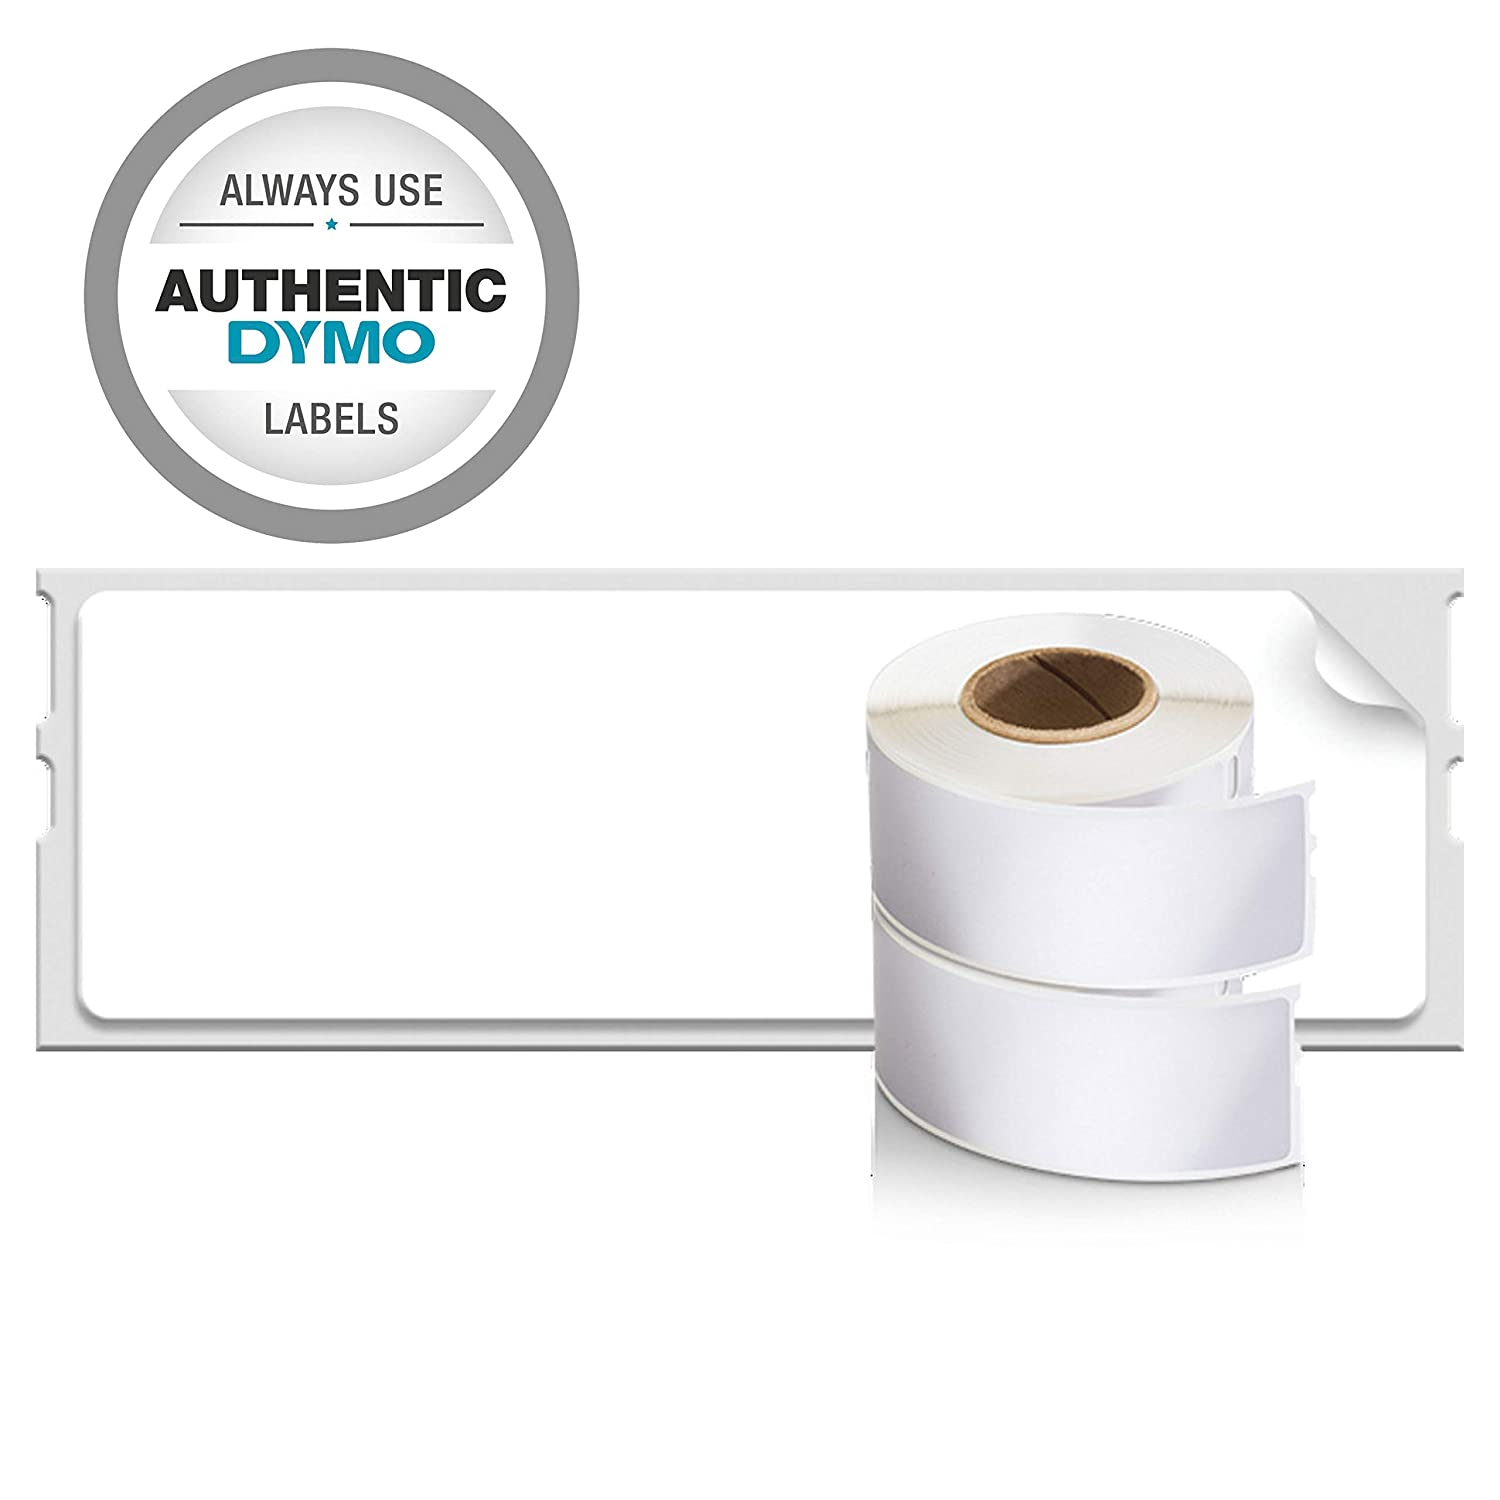 Dymo 30252 Label Writer Self-Adhesive Address Labels,White, Roll of 350